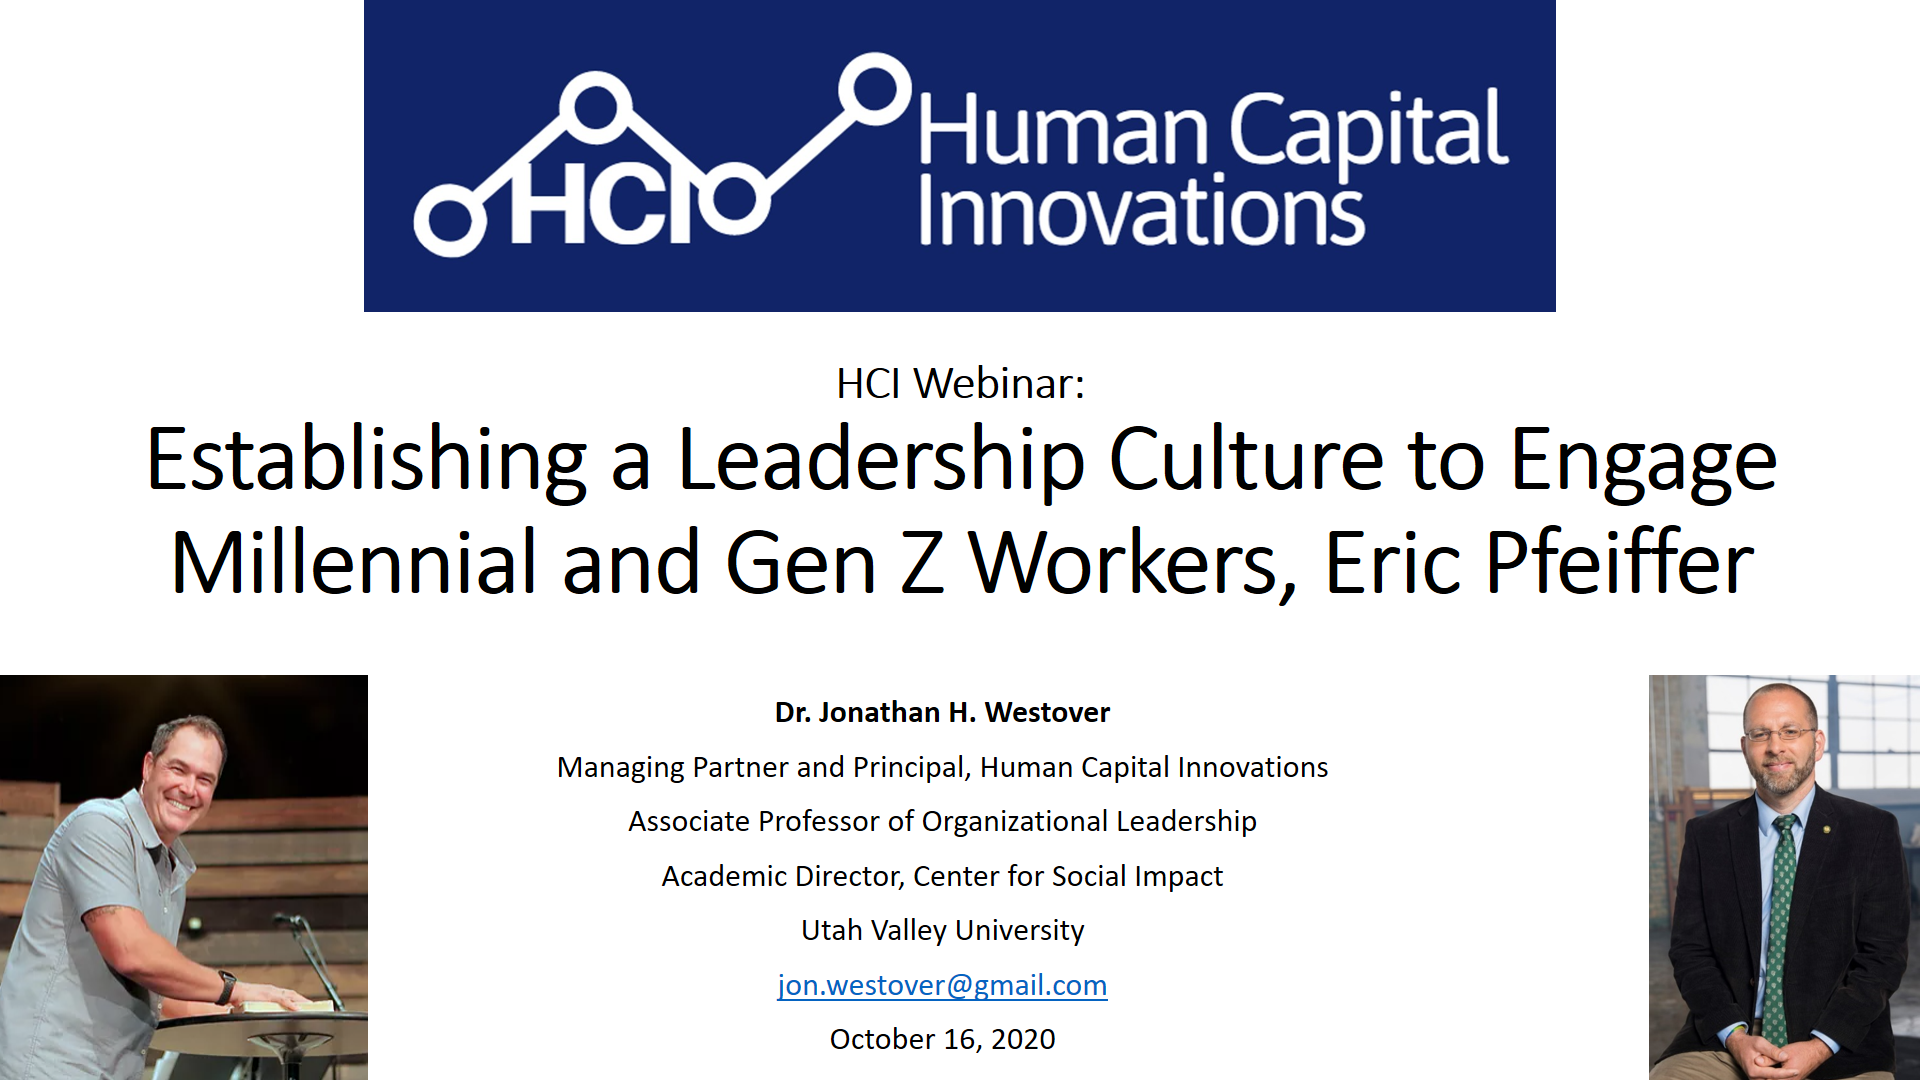 Establishing a Leadership Culture to Engage Millennial and Gen Z Workers